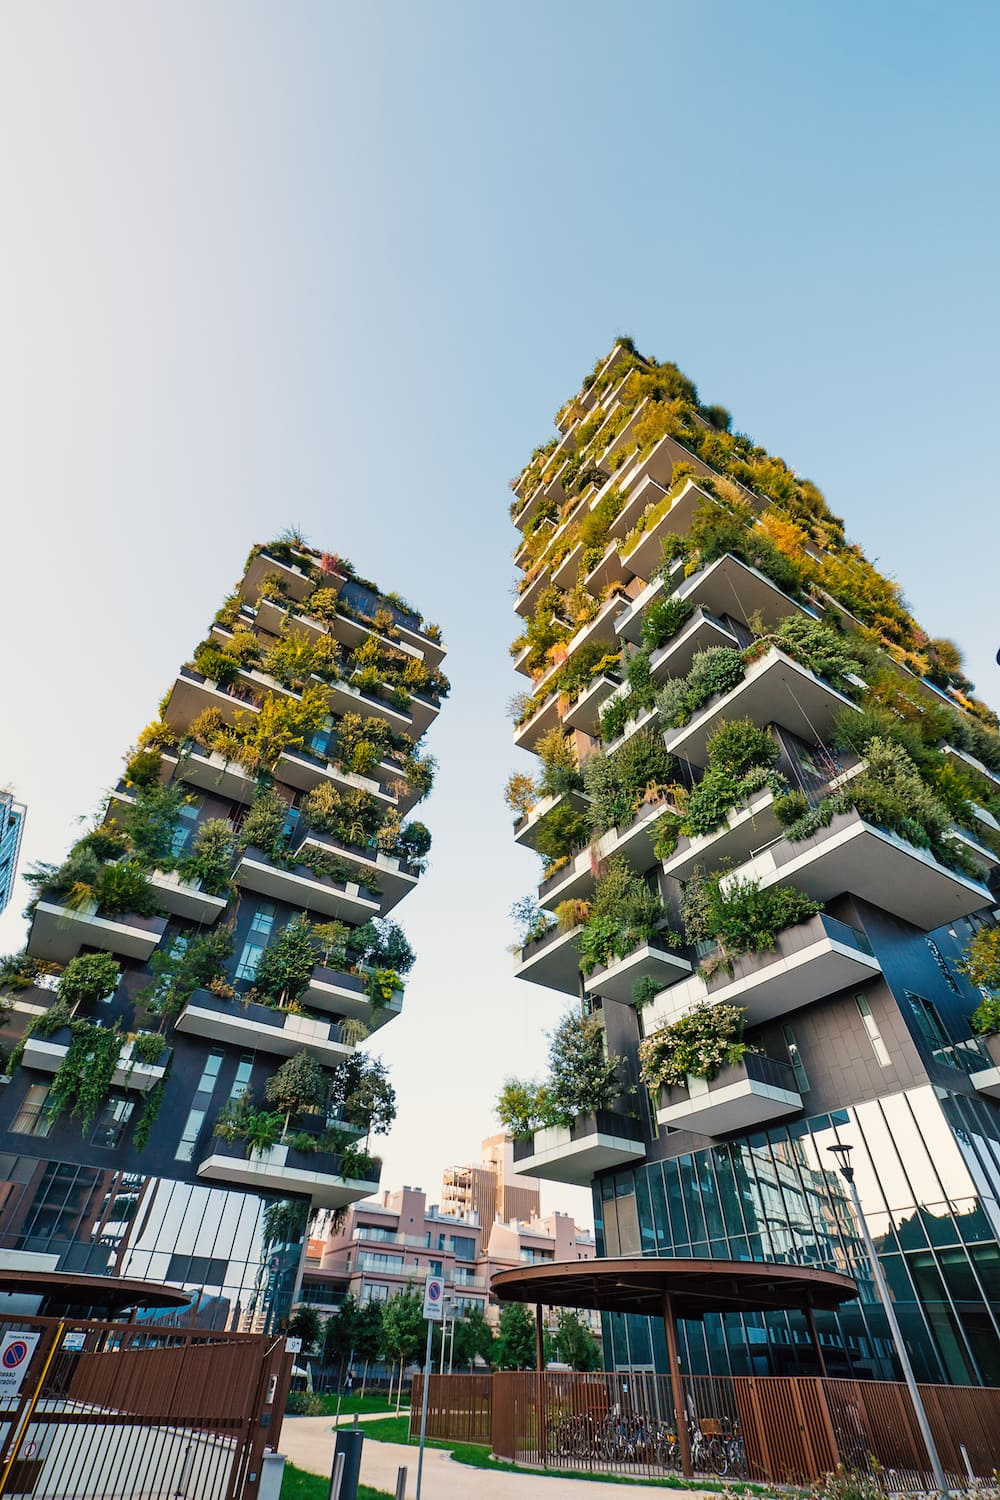 This is photo of the Bosco Verticale buildings in Milan